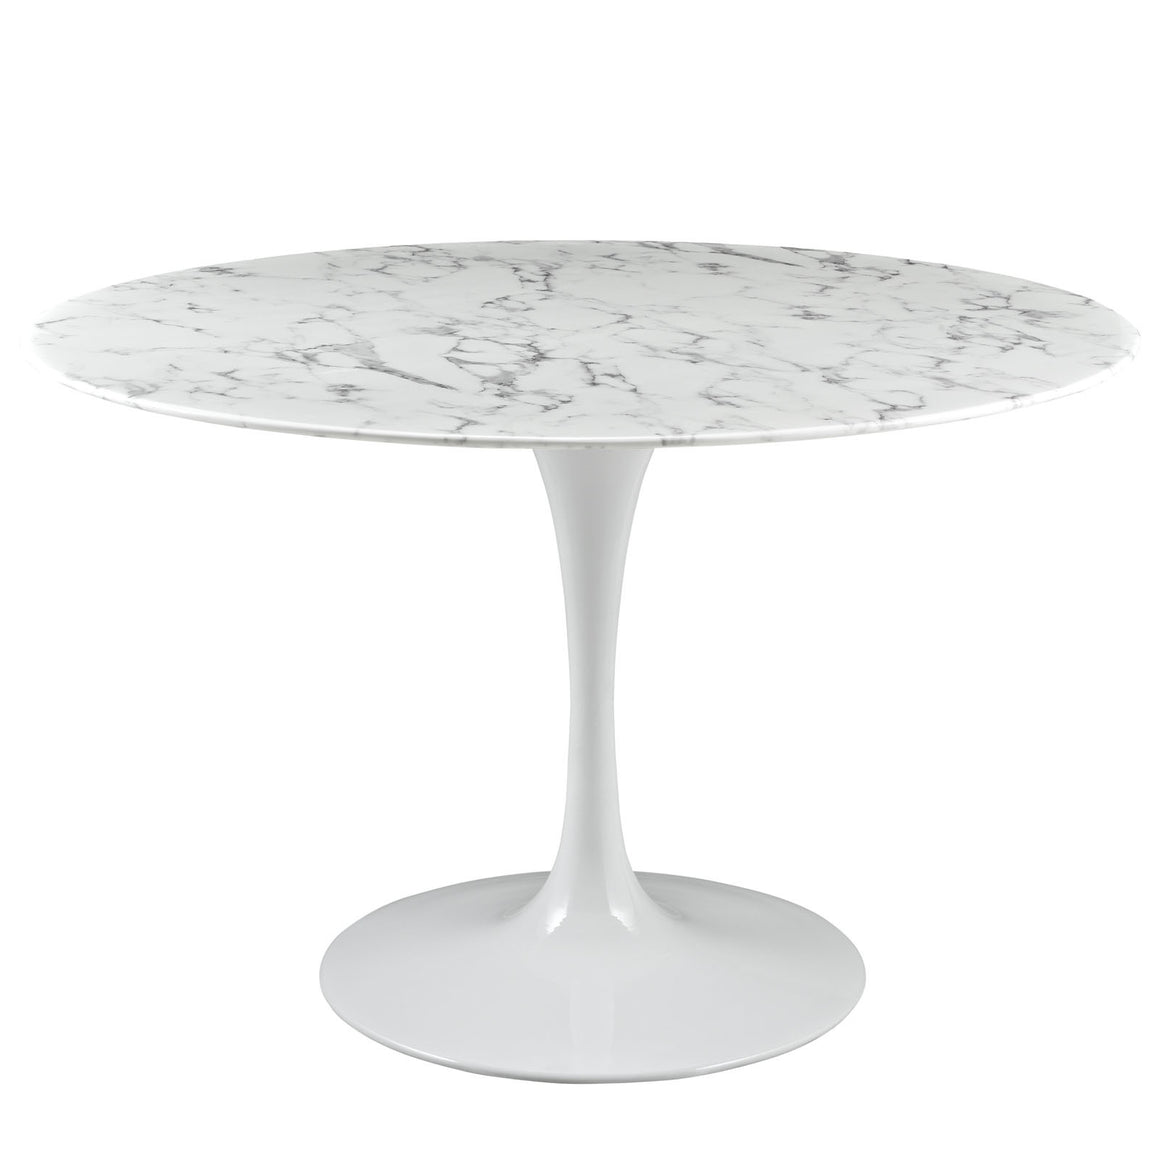 "Lippa 47"" Artificial Marble Dining Table"